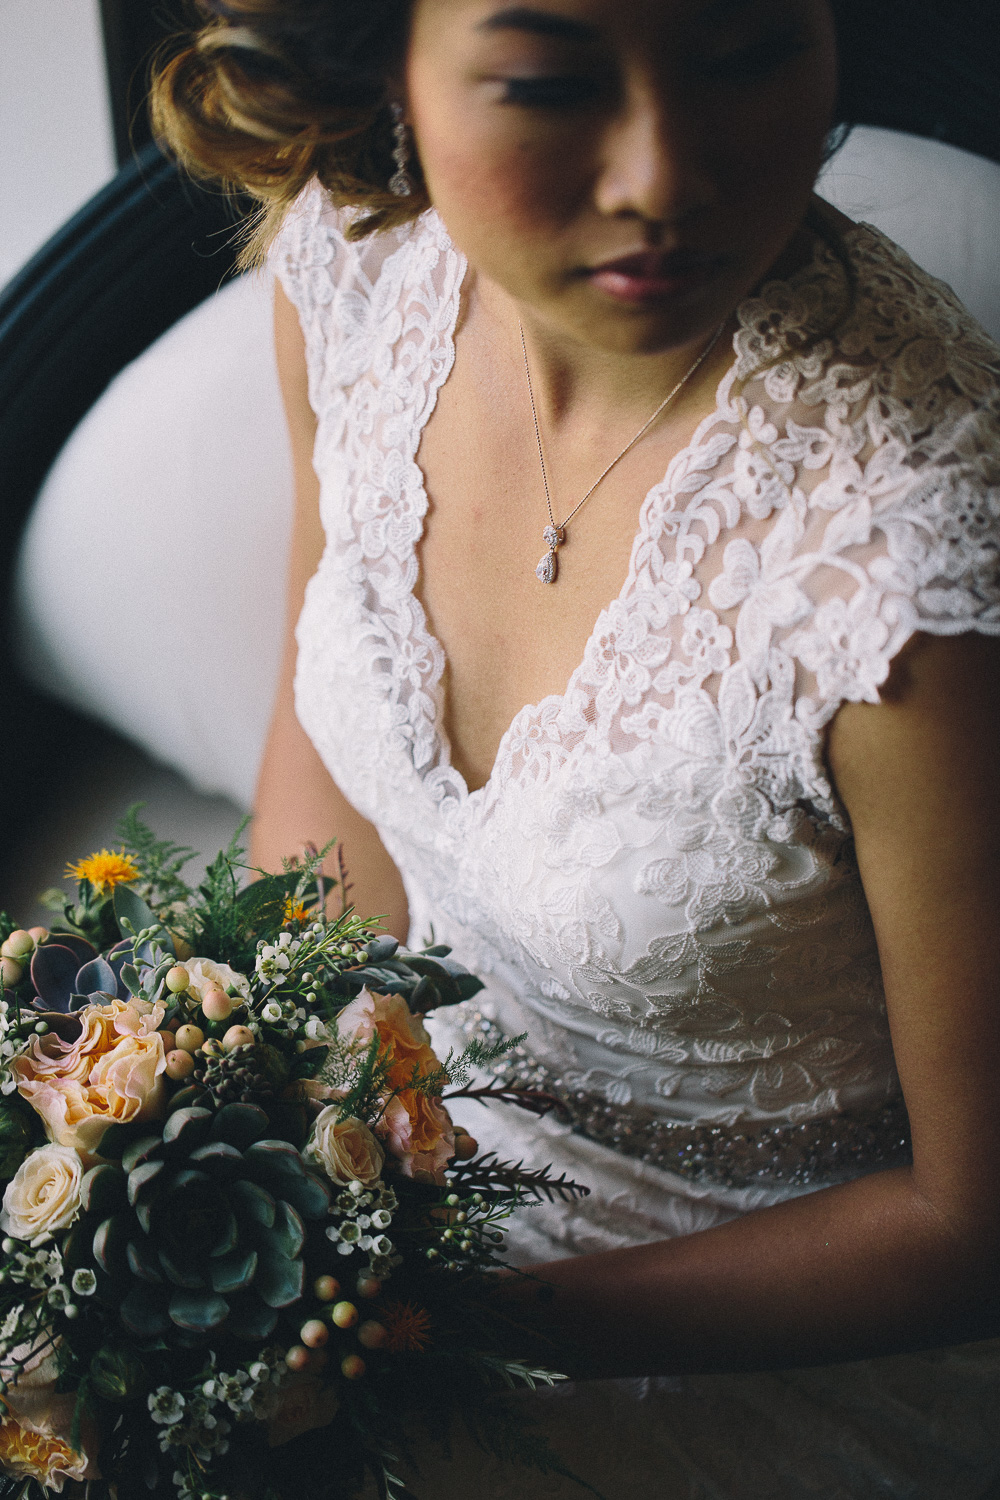 Asian bride wearing v-neck lace wedding gown and tear drop diamond necklace and earrings holds her succulent bridal bouquet at Hotel Ocho after getting ready